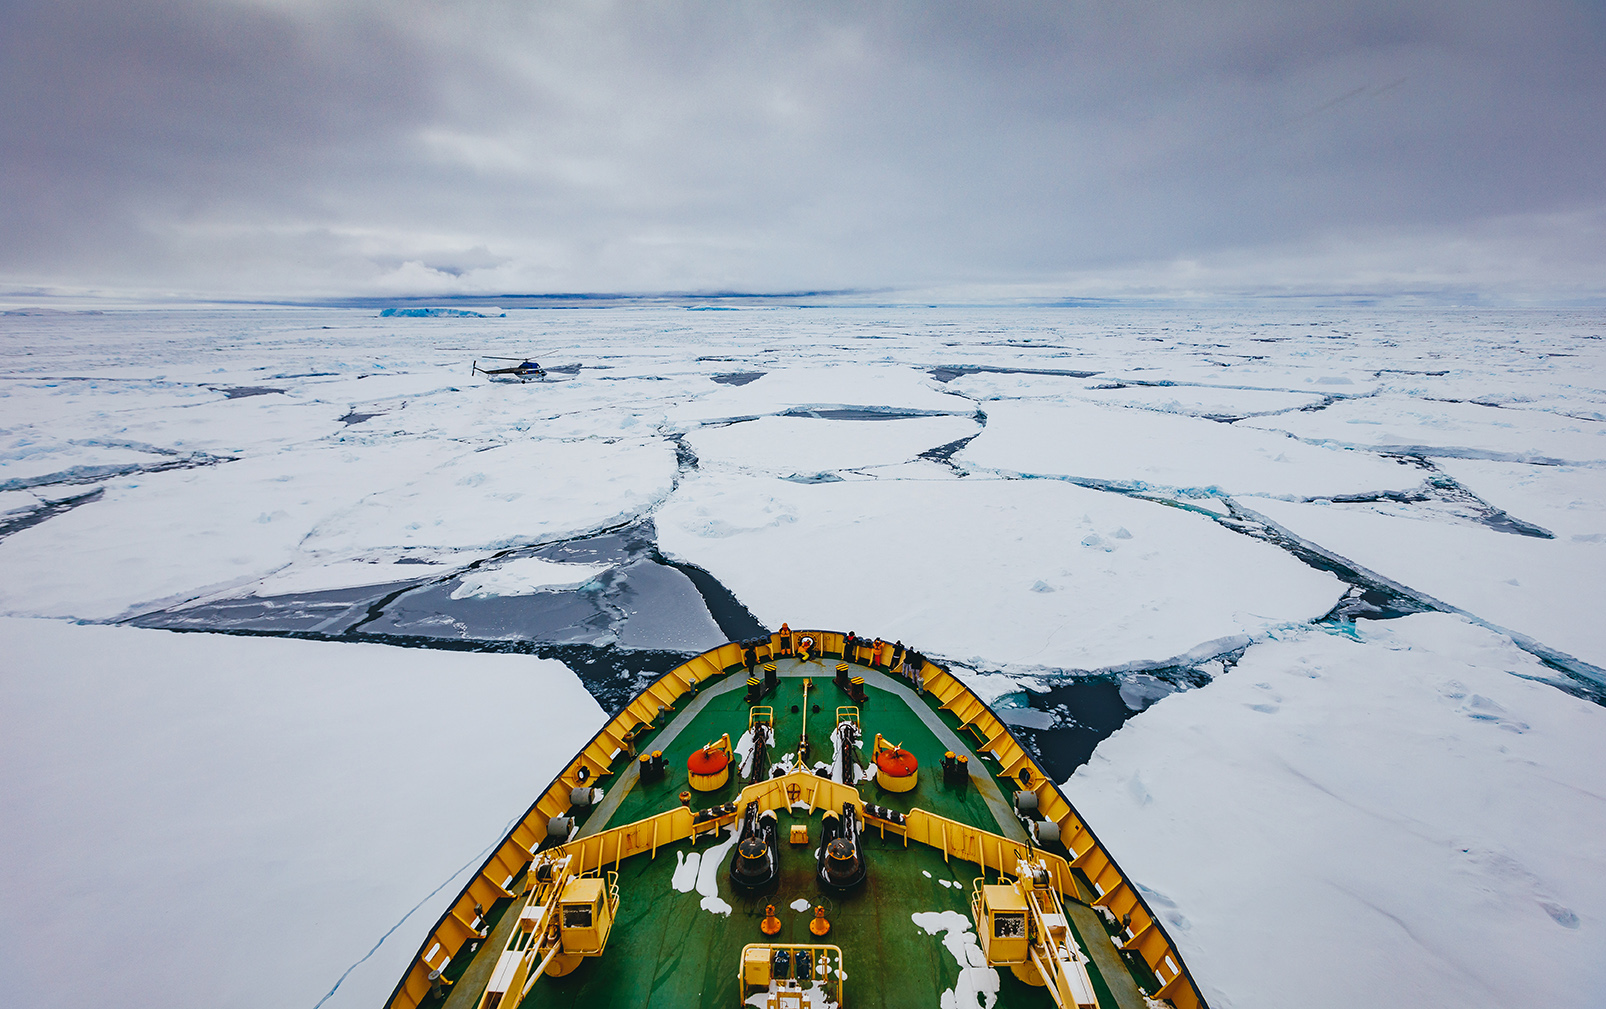 Quark Expeditions guests travel to Snow Hill Island on the legendary ice-breaker Kapitan Khlebnikov.